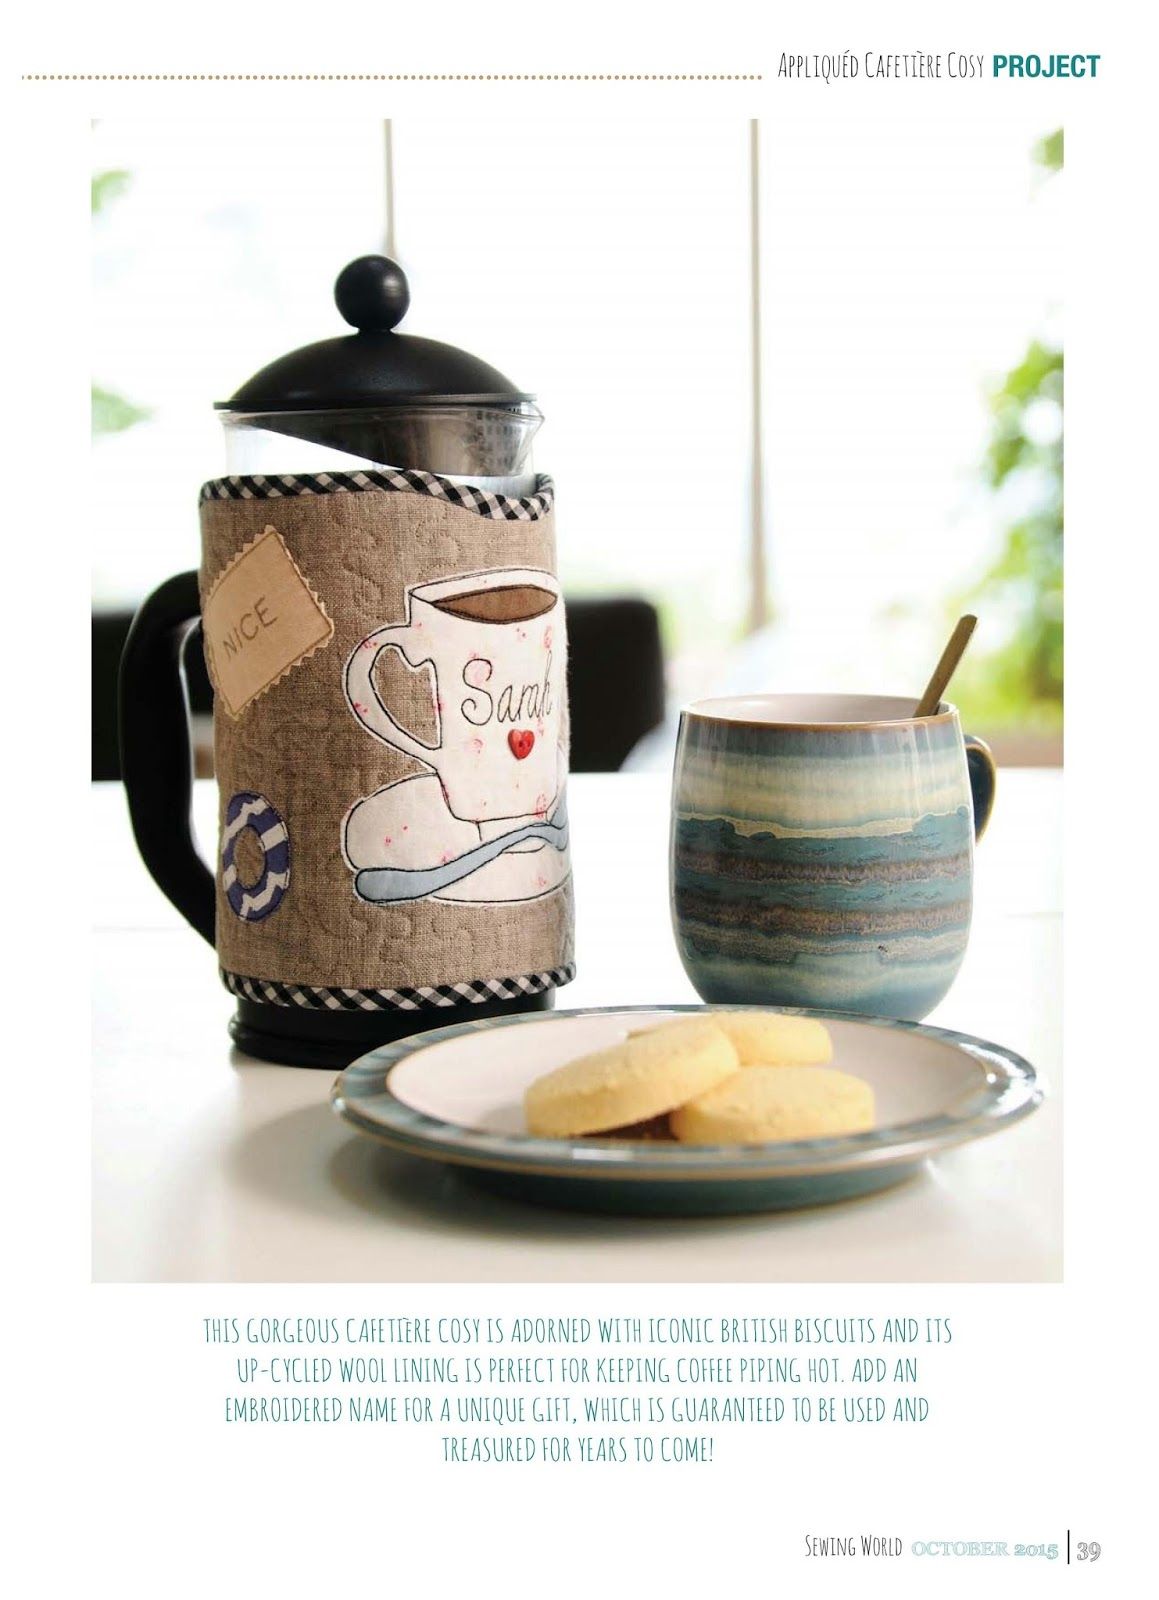 Sewforsoul British Biscuits Appliqued Cafetiere Cosy